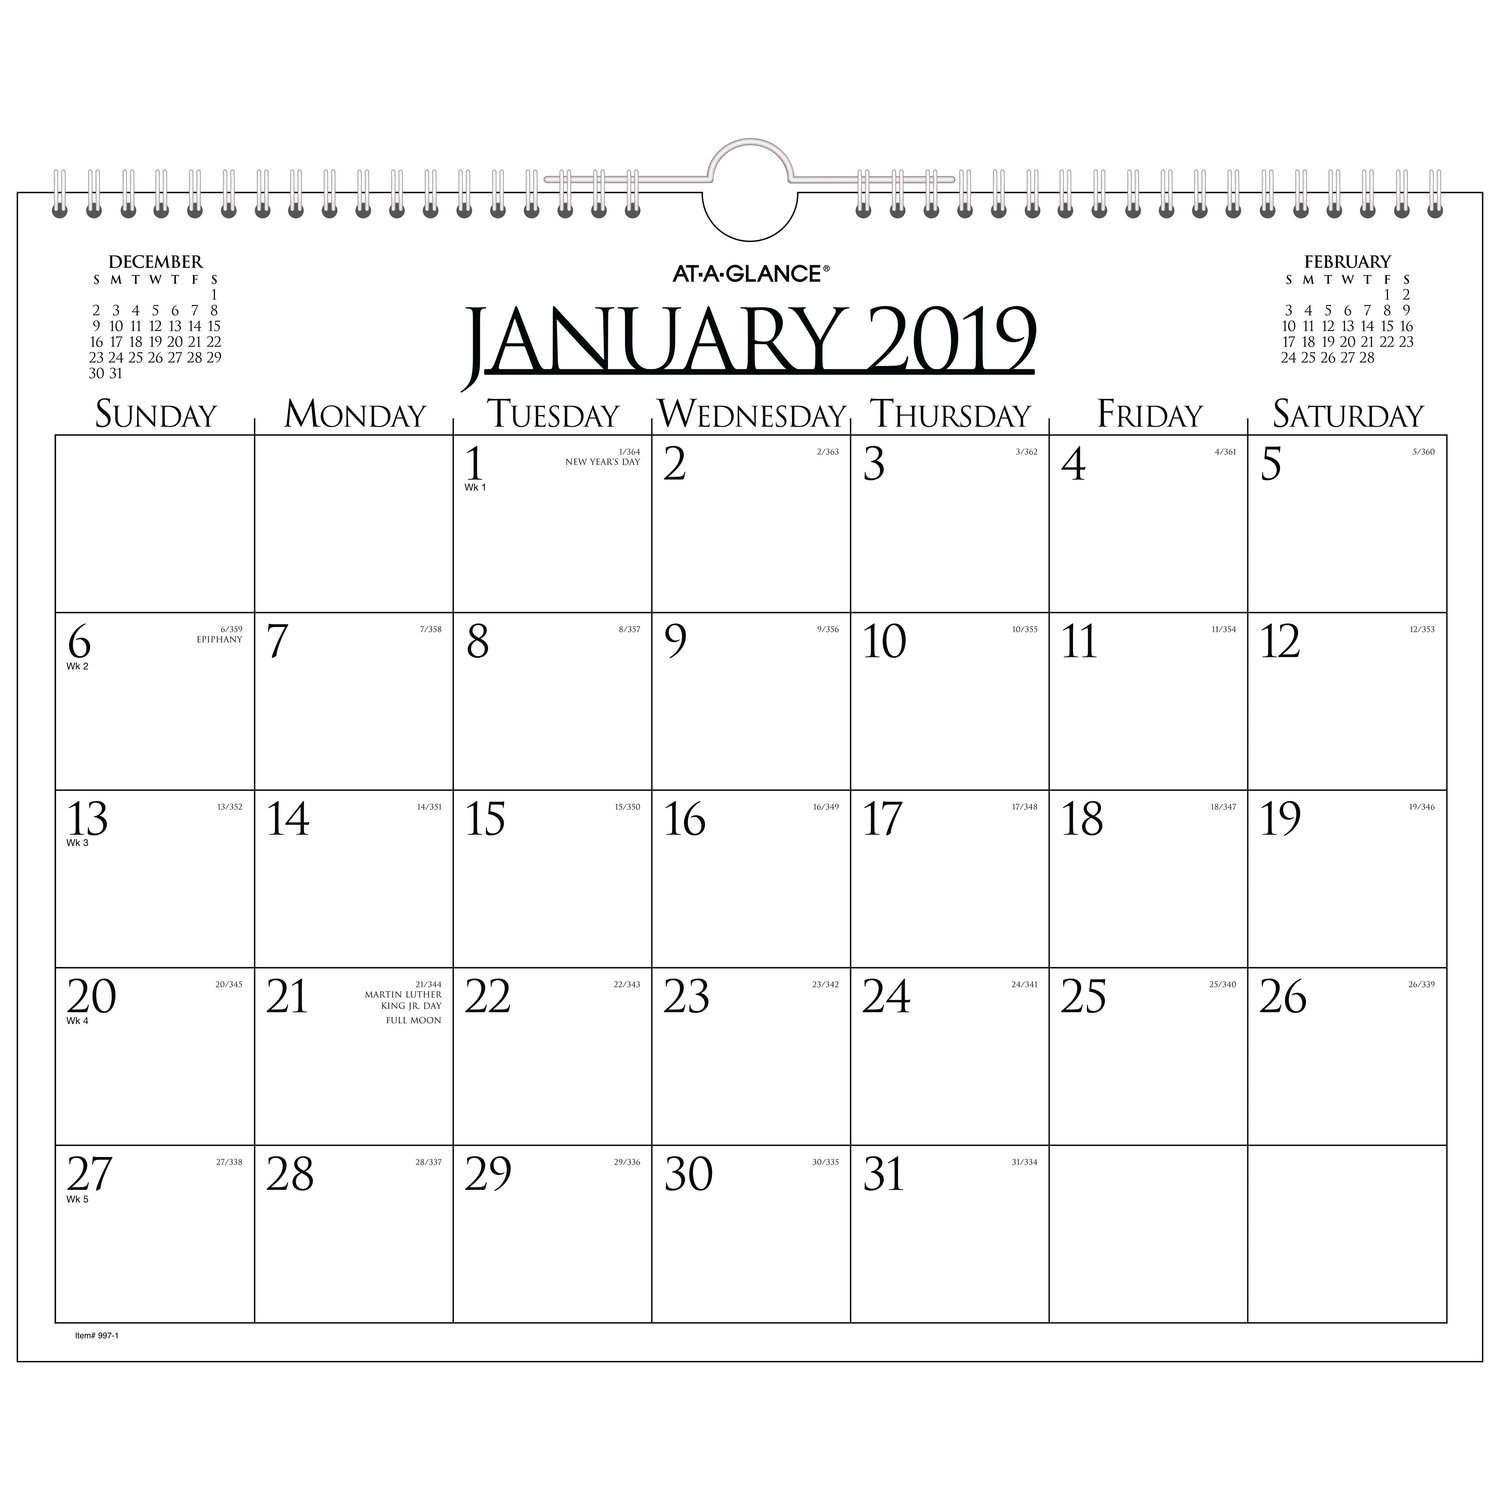 AT-A-GLANCE Monthly Wall Calendar, January 2019 - December 2019, 15'' x 12'', Business, Wirebound (997-1)